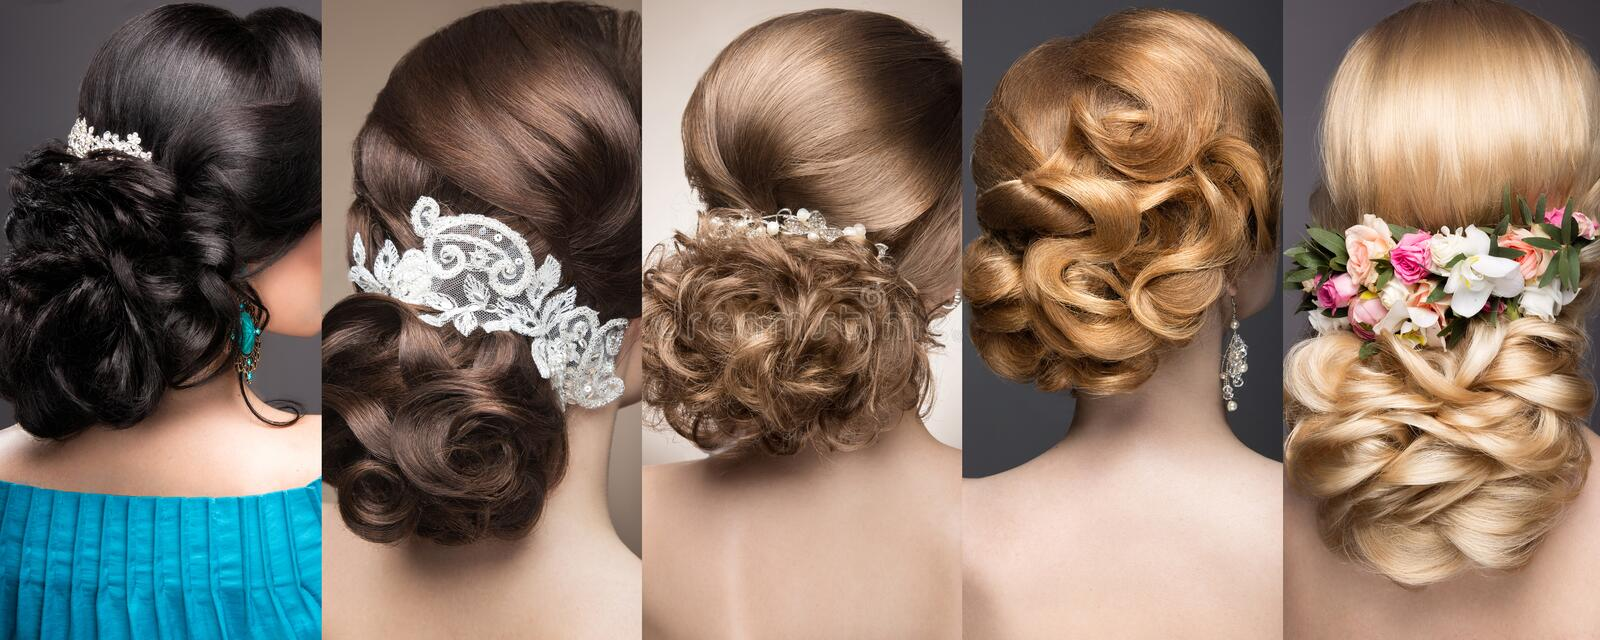 Collection of wedding hairstyles. Beautiful girls. Beauty hair. stock image